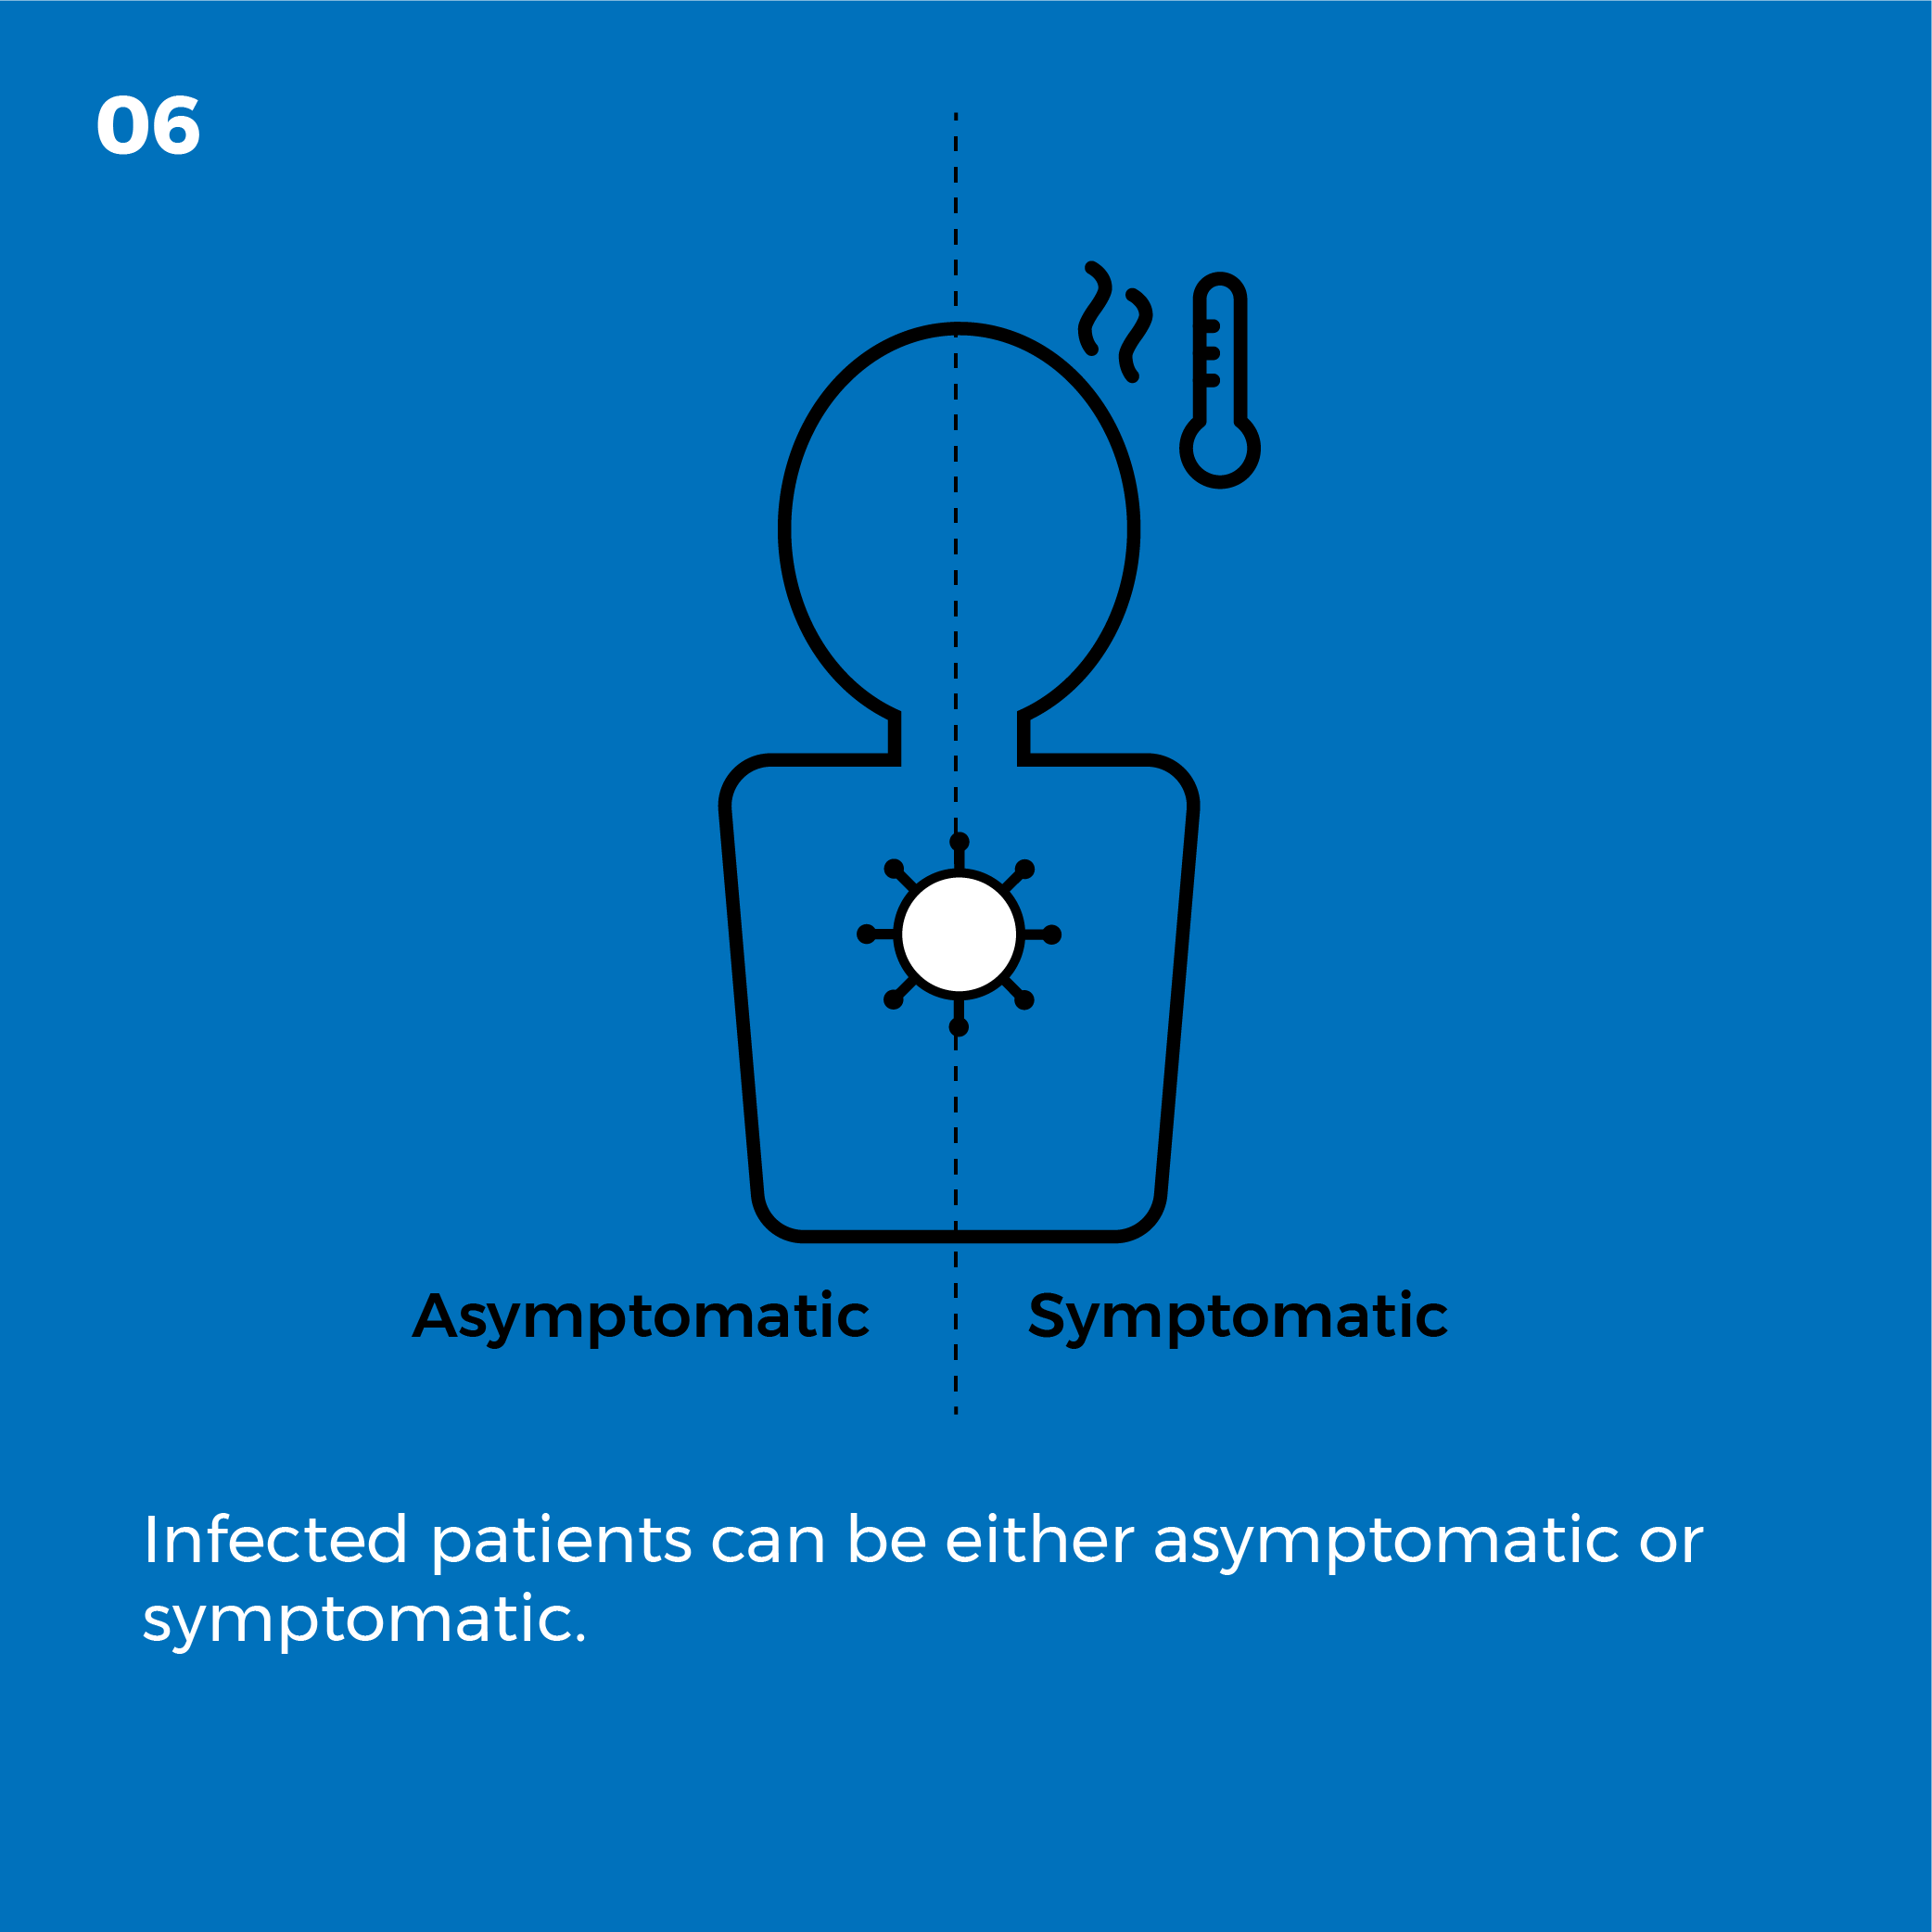 Infected patients can be either asymptomatic or symptomatic.